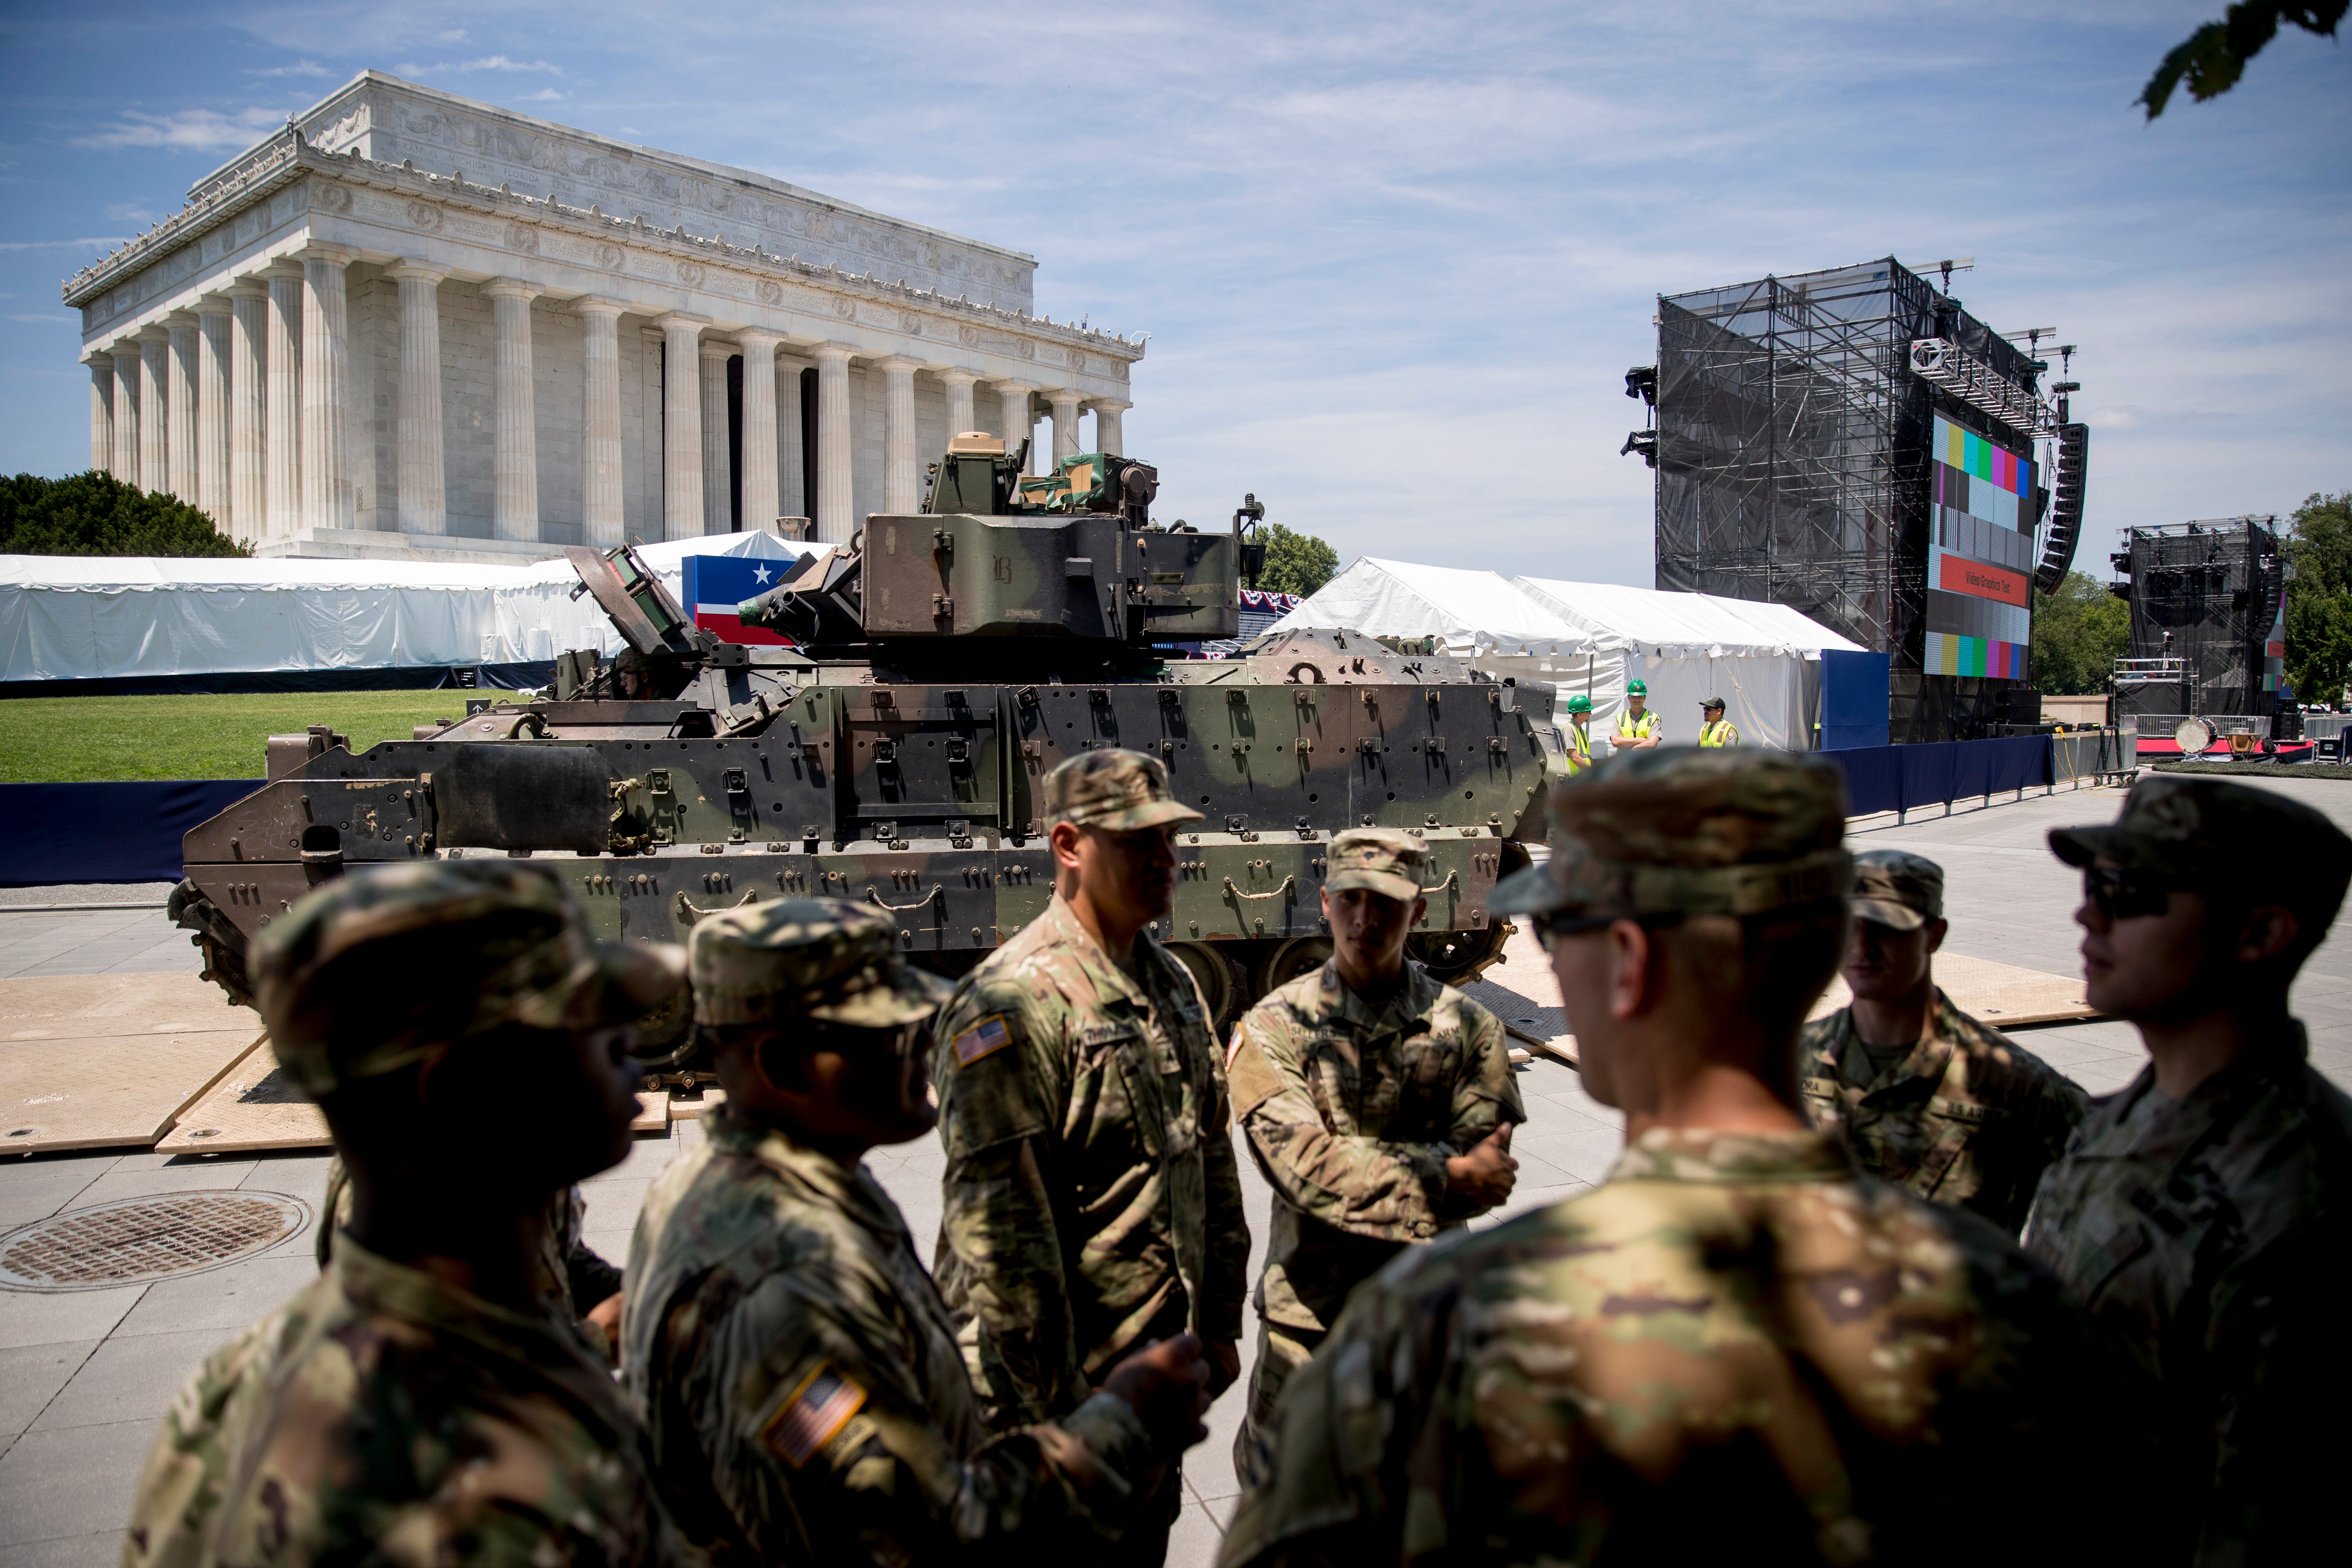 1,700 troops will support Trump s 4th of July celebration plans, Pentagon says